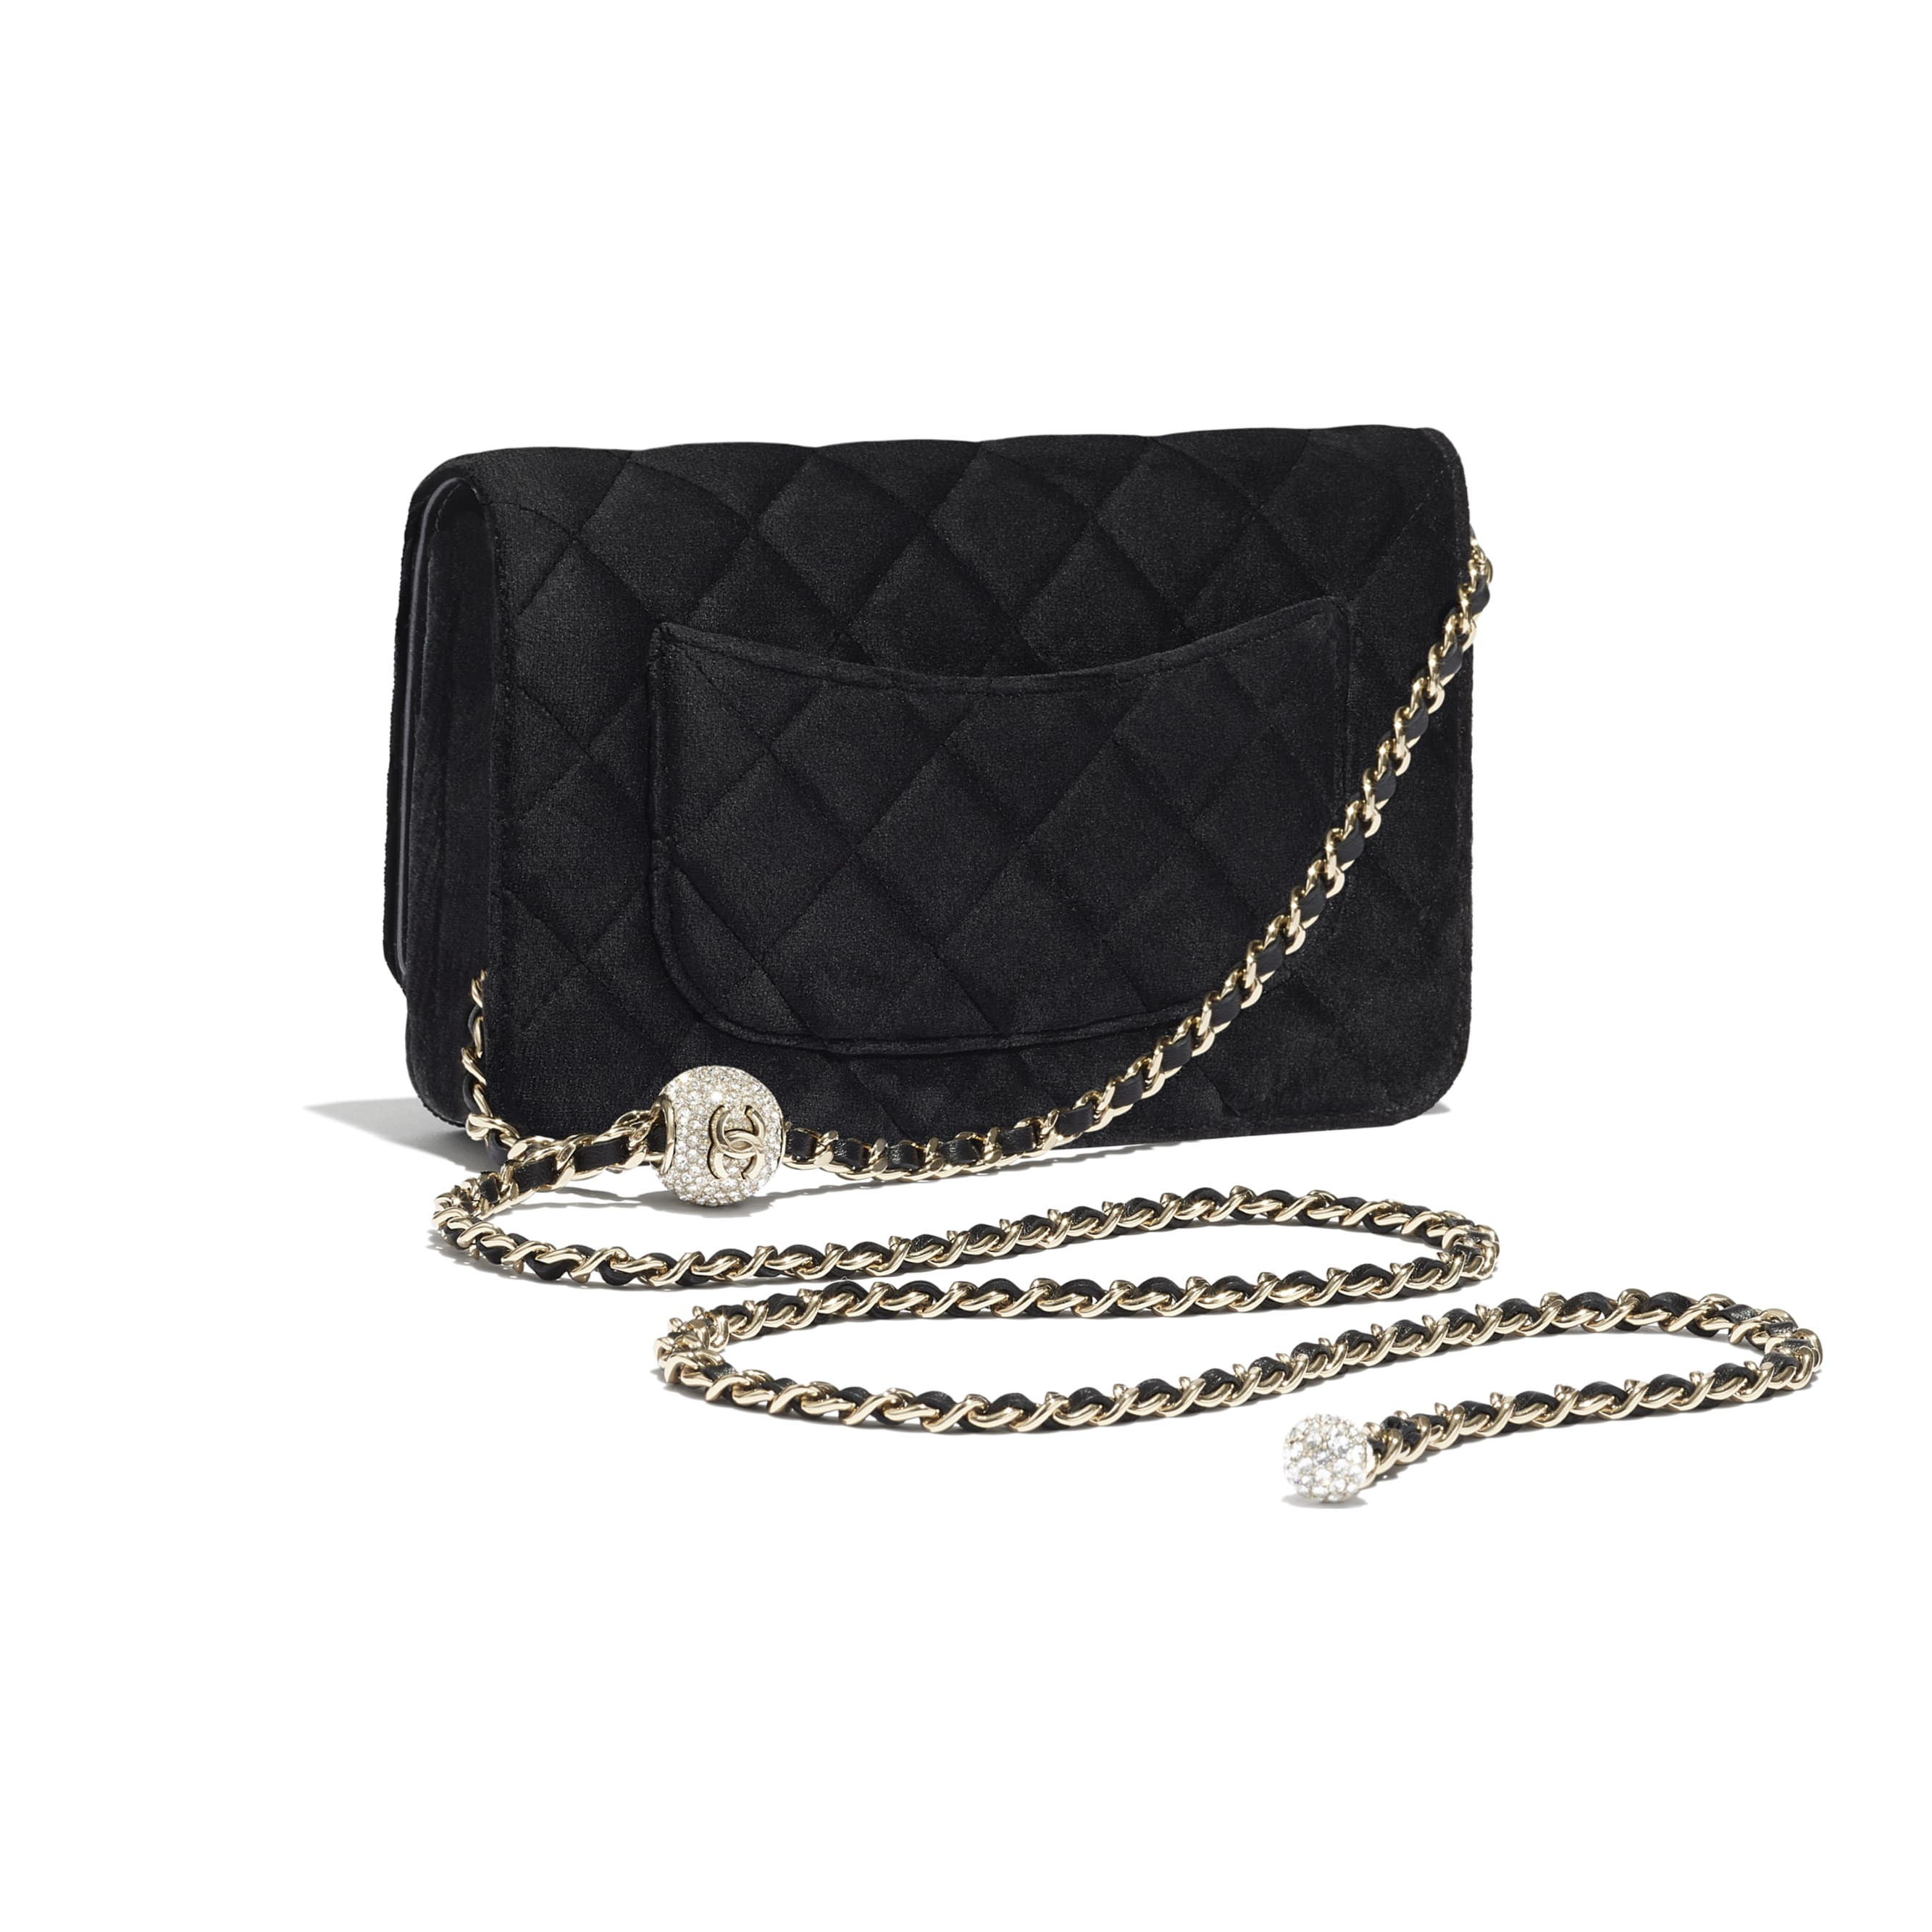 Wallet on Chain - Black - Velvet, Strass & Gold-Tone Metal - CHANEL - Extra view - see standard sized version